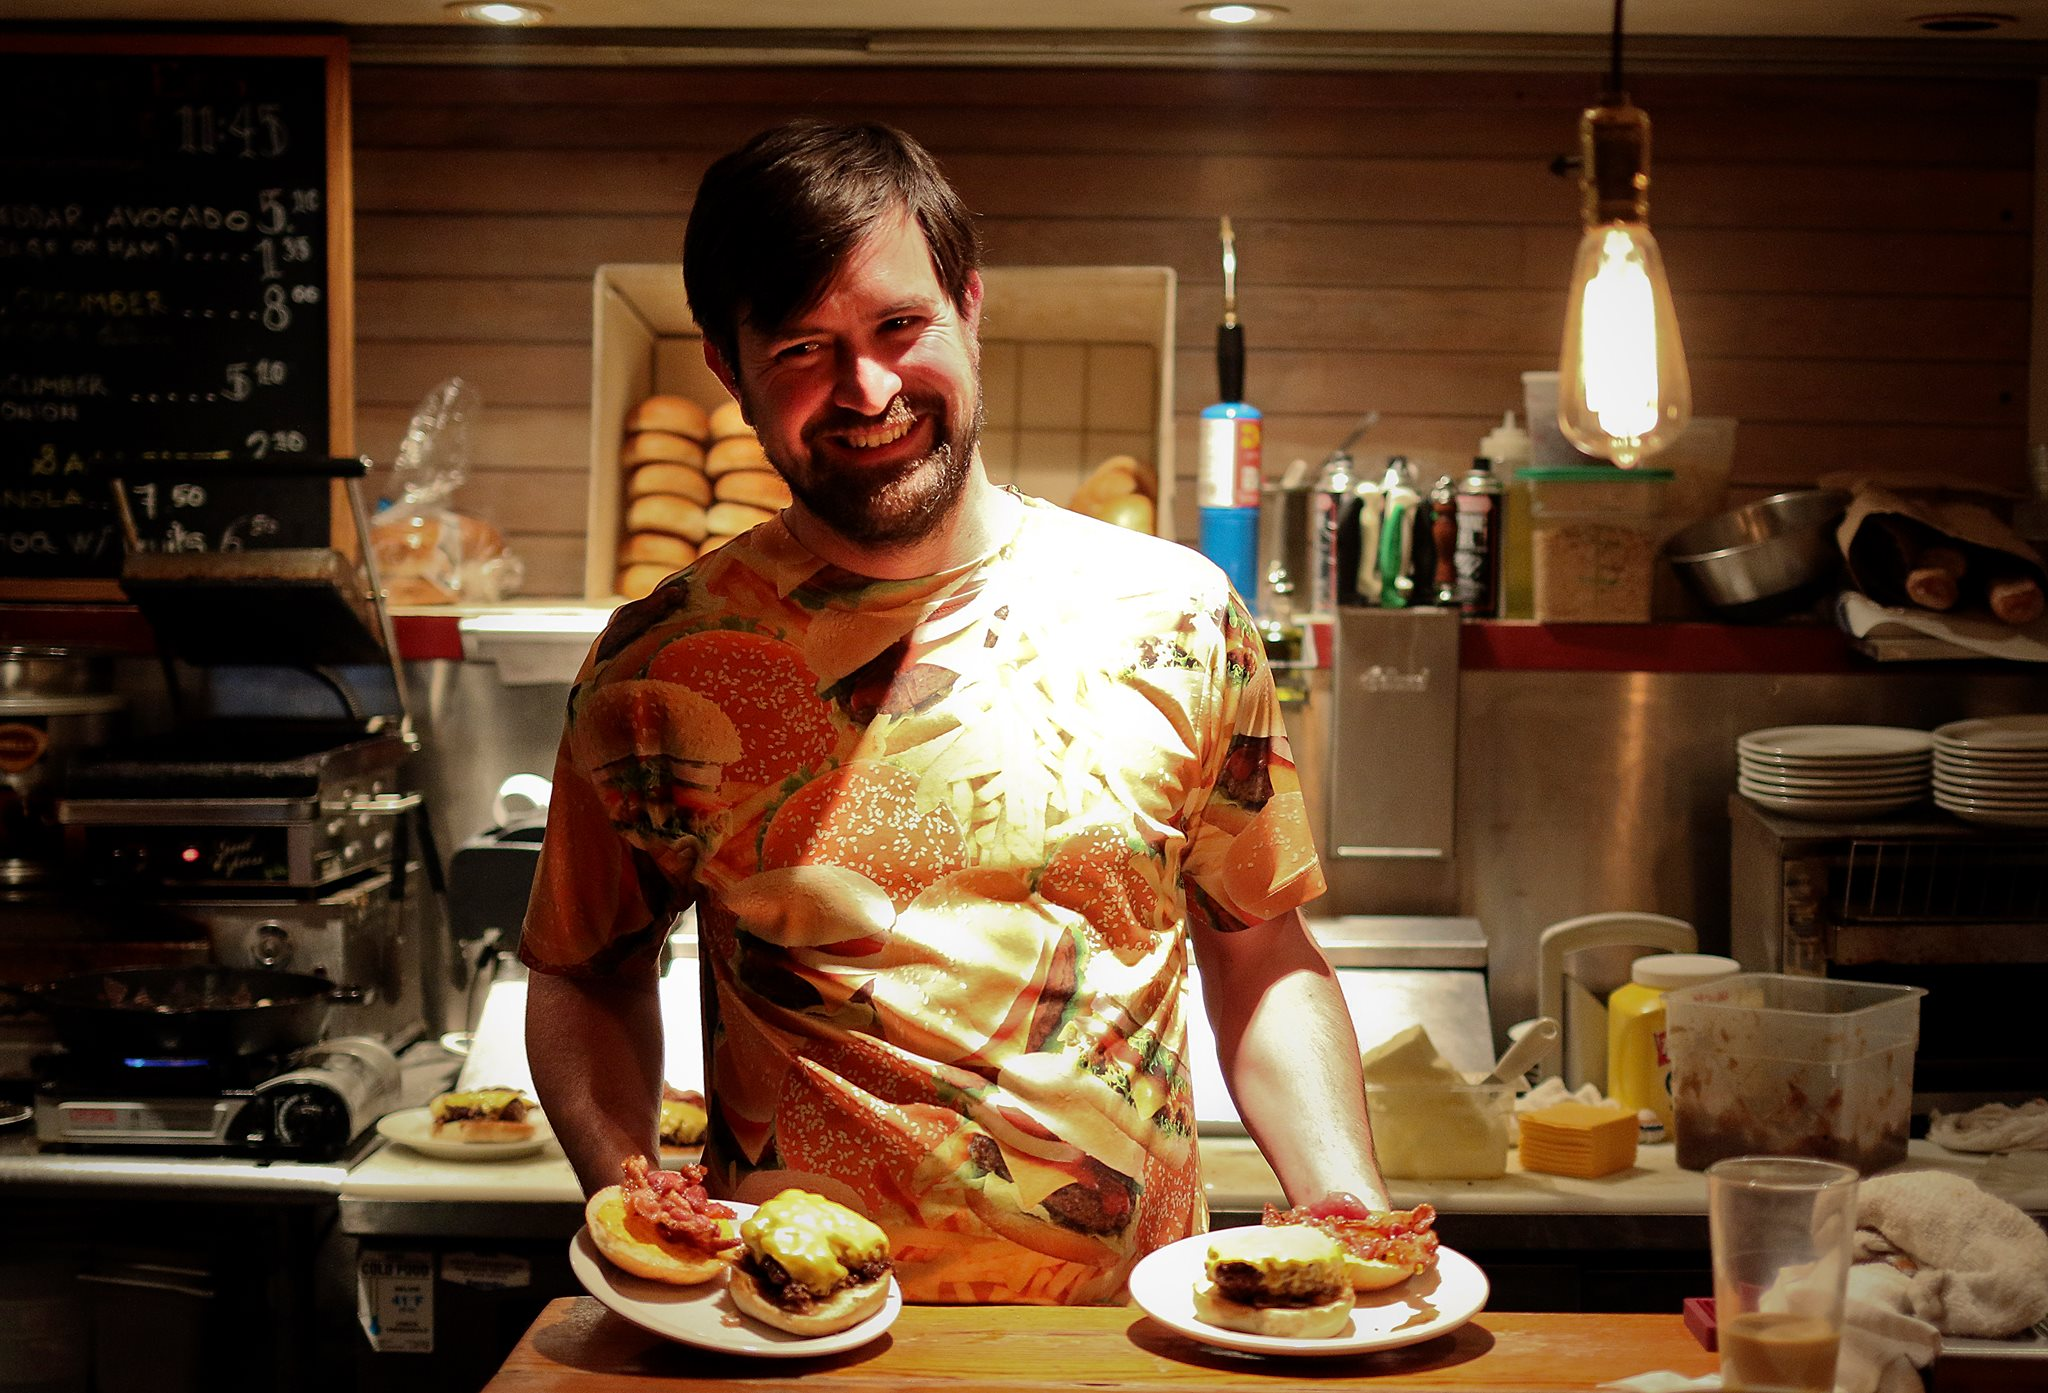 Wes Rowe, owner and chef of WesBurger 'N' More